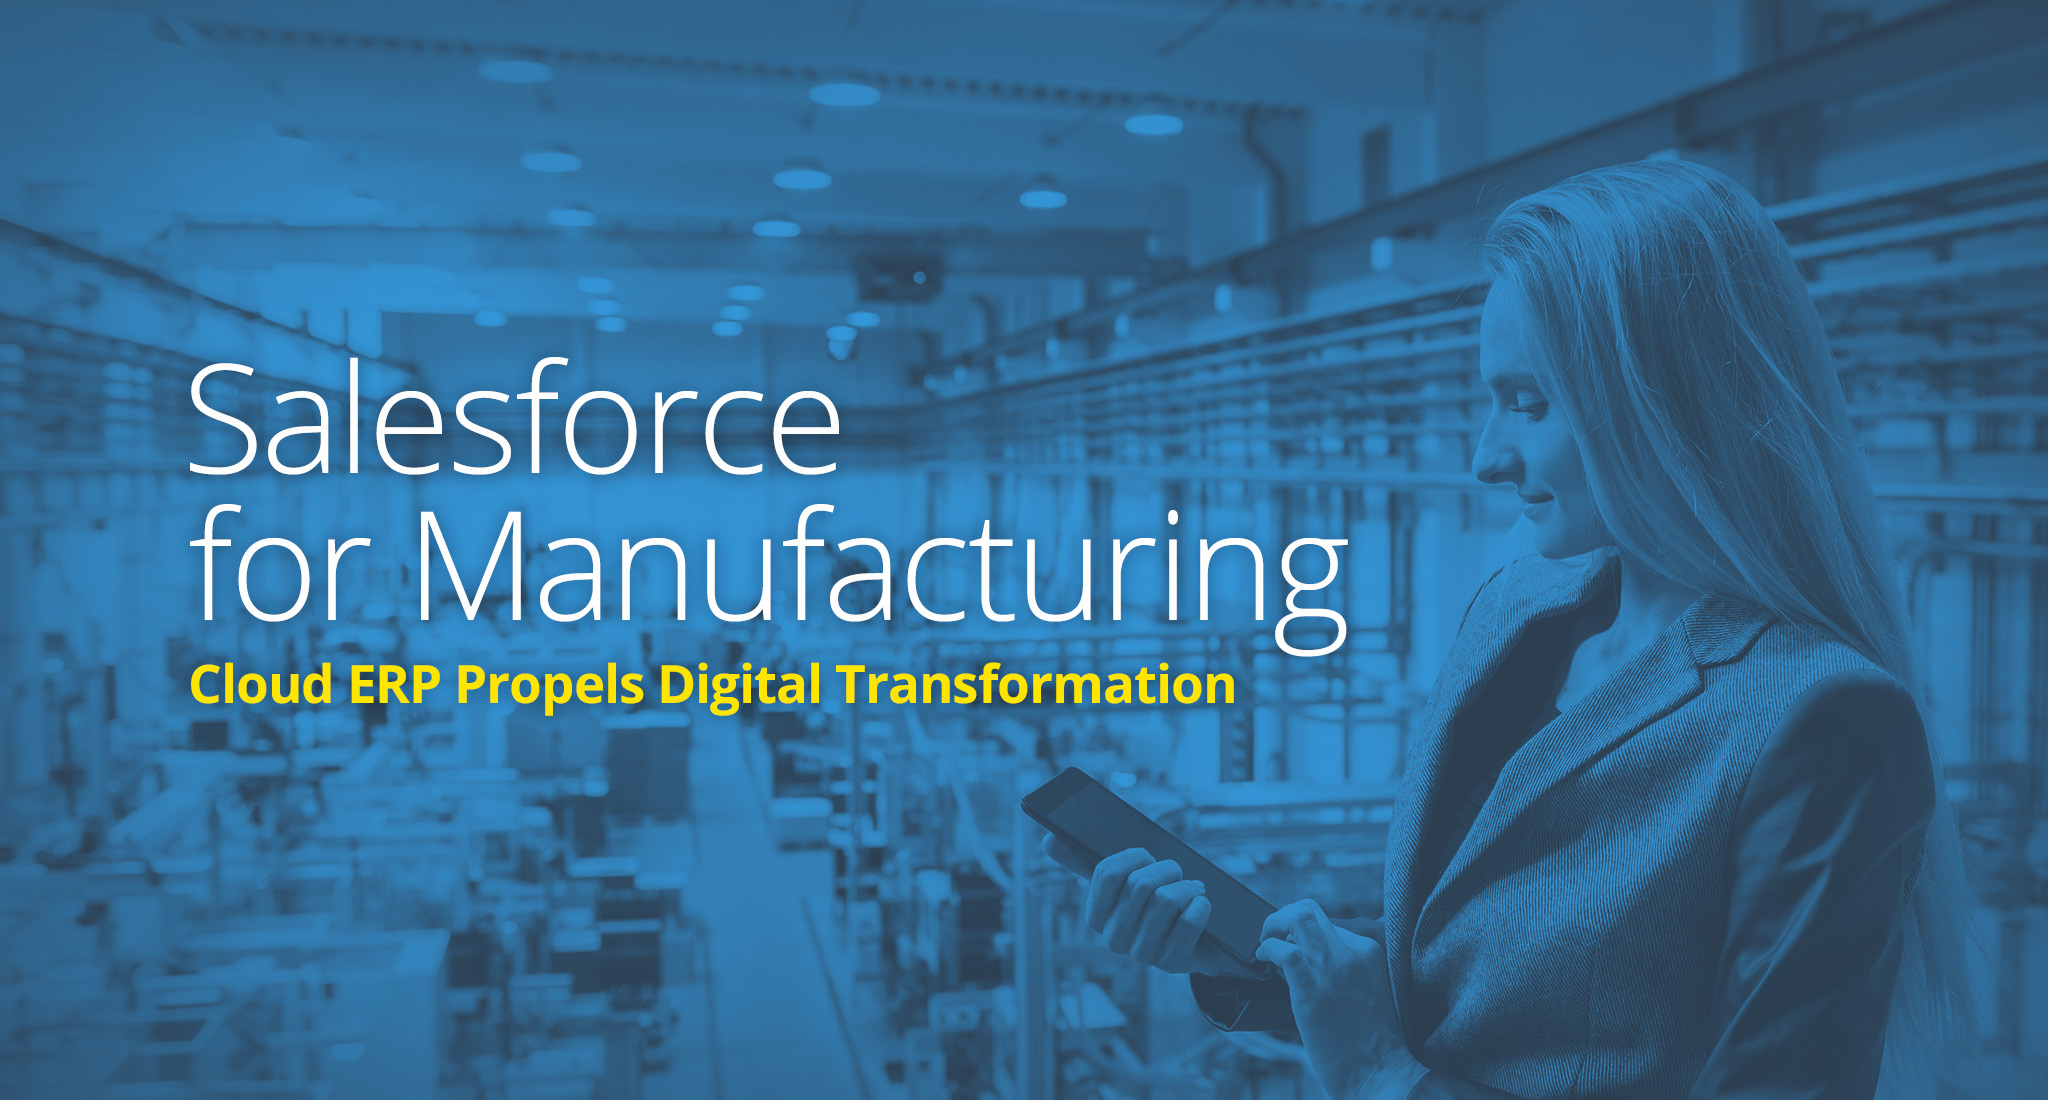 Salesforce-for-Manufacturing-Cloud-ERP-Propels-Digital-Transformation